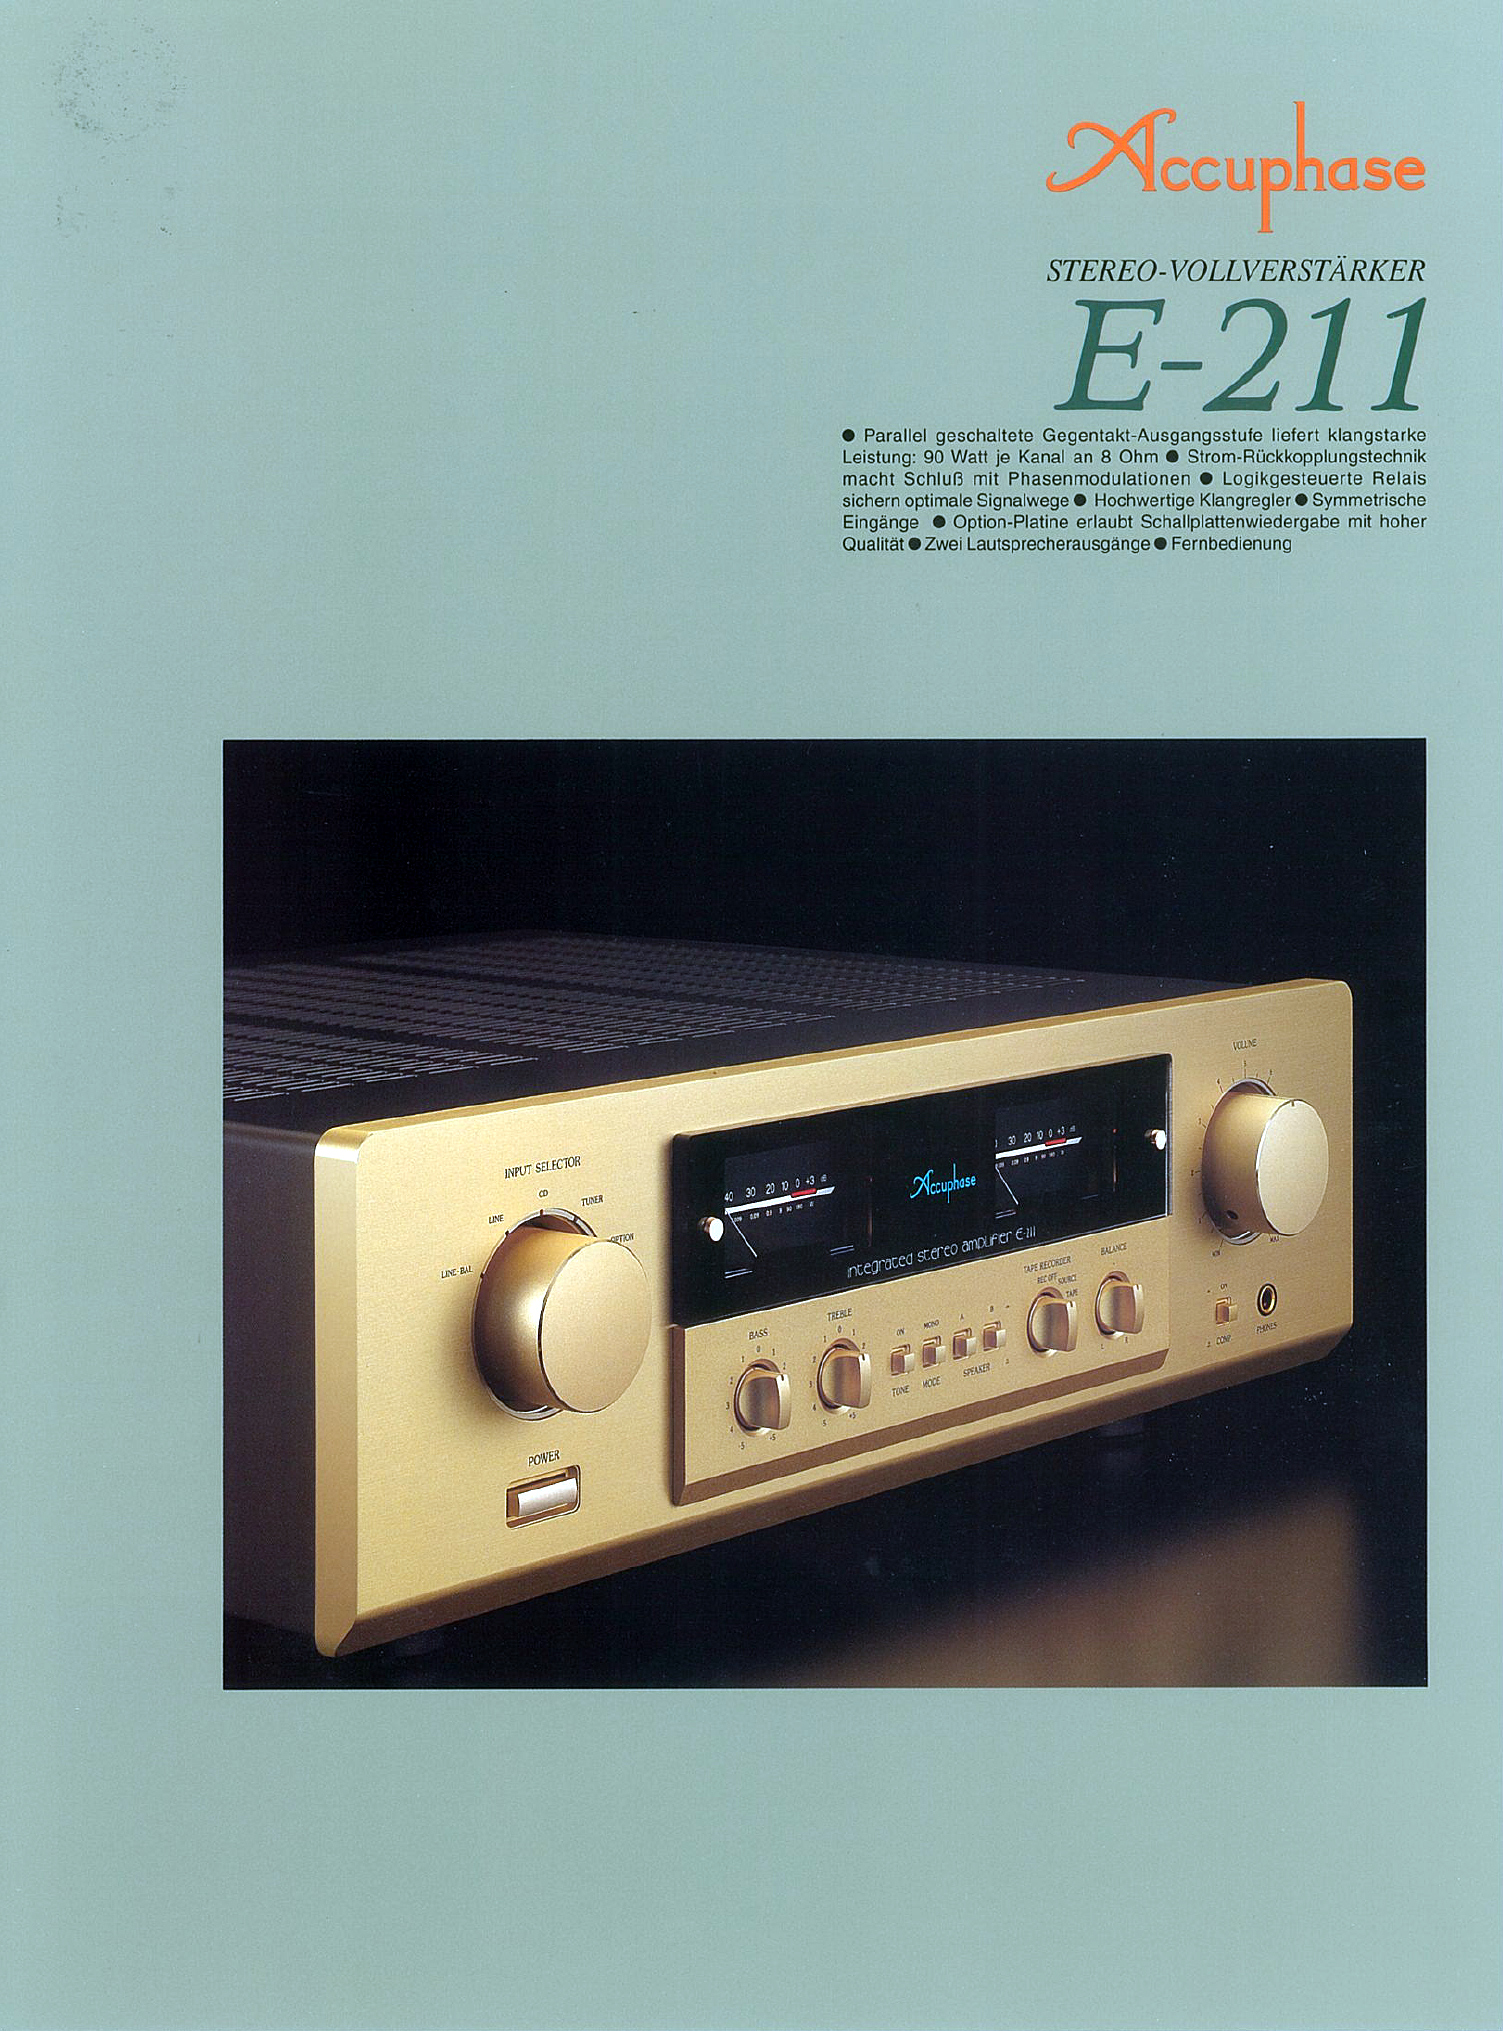 Accuphase E-211-Prospekt-1.jpg